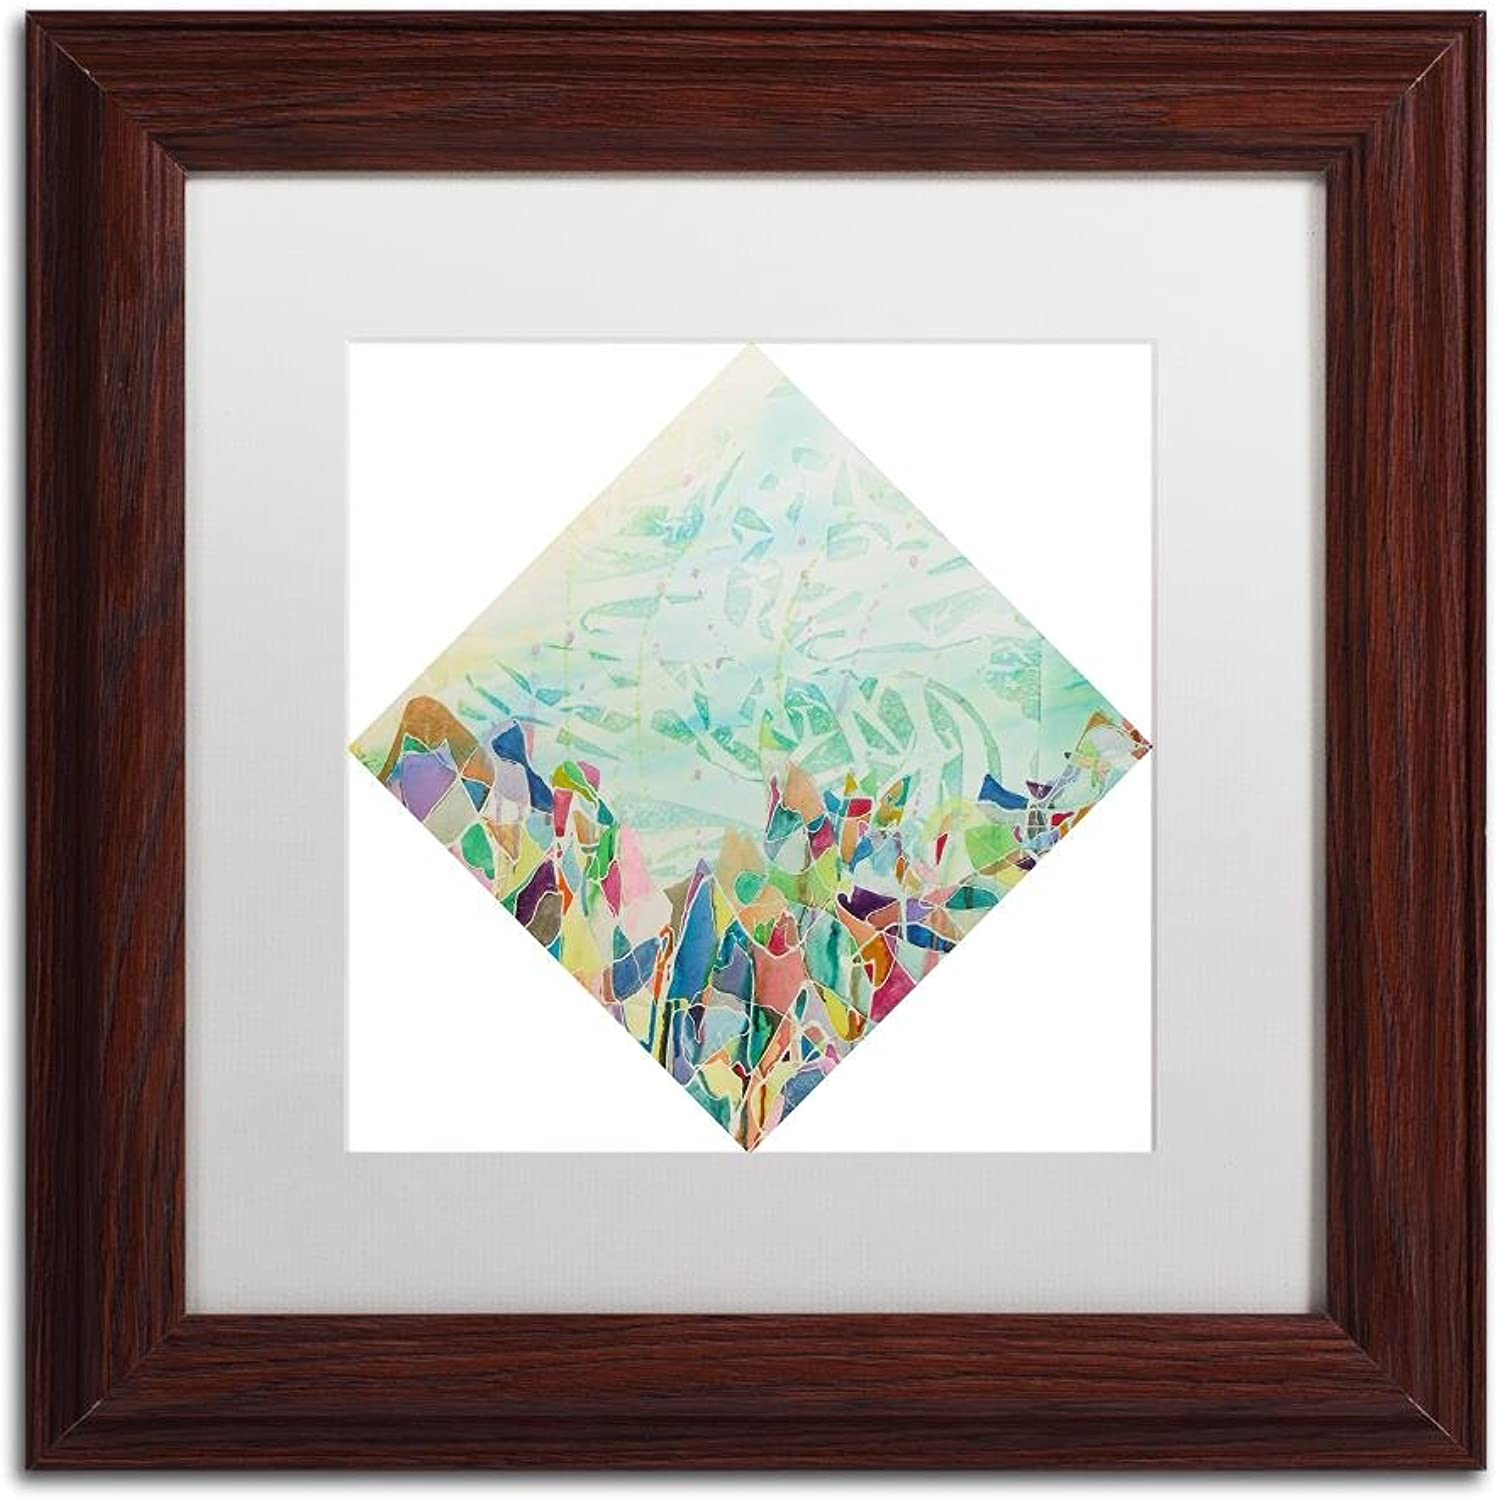 Trademark Fine Art Xuelian Feng by Lauren Moss, White Matte, Wood Frame 11x11